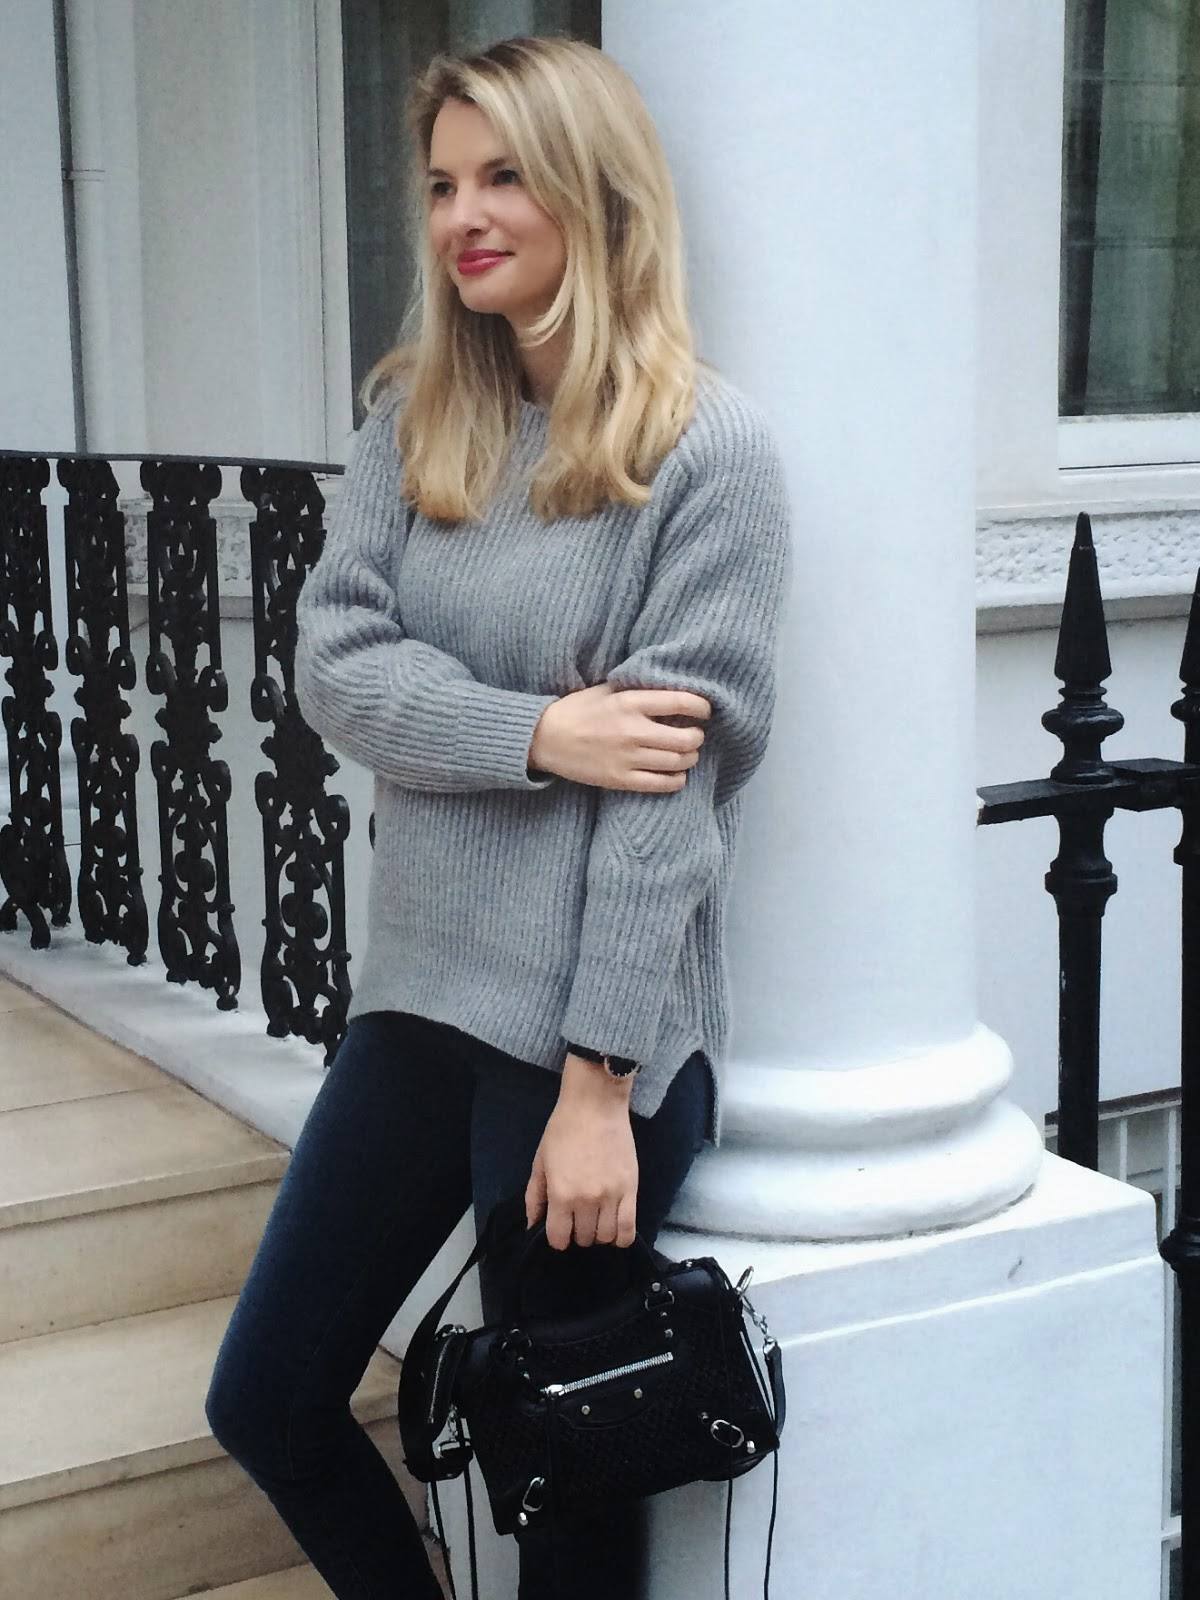 All saints grey jumper, shopping haul, sale shopping haul, grey knitted jumper, baleniaga, balenciaga city mini, black balenciaga mini, j brand jeans, street style, fashion blogger, london bloger,